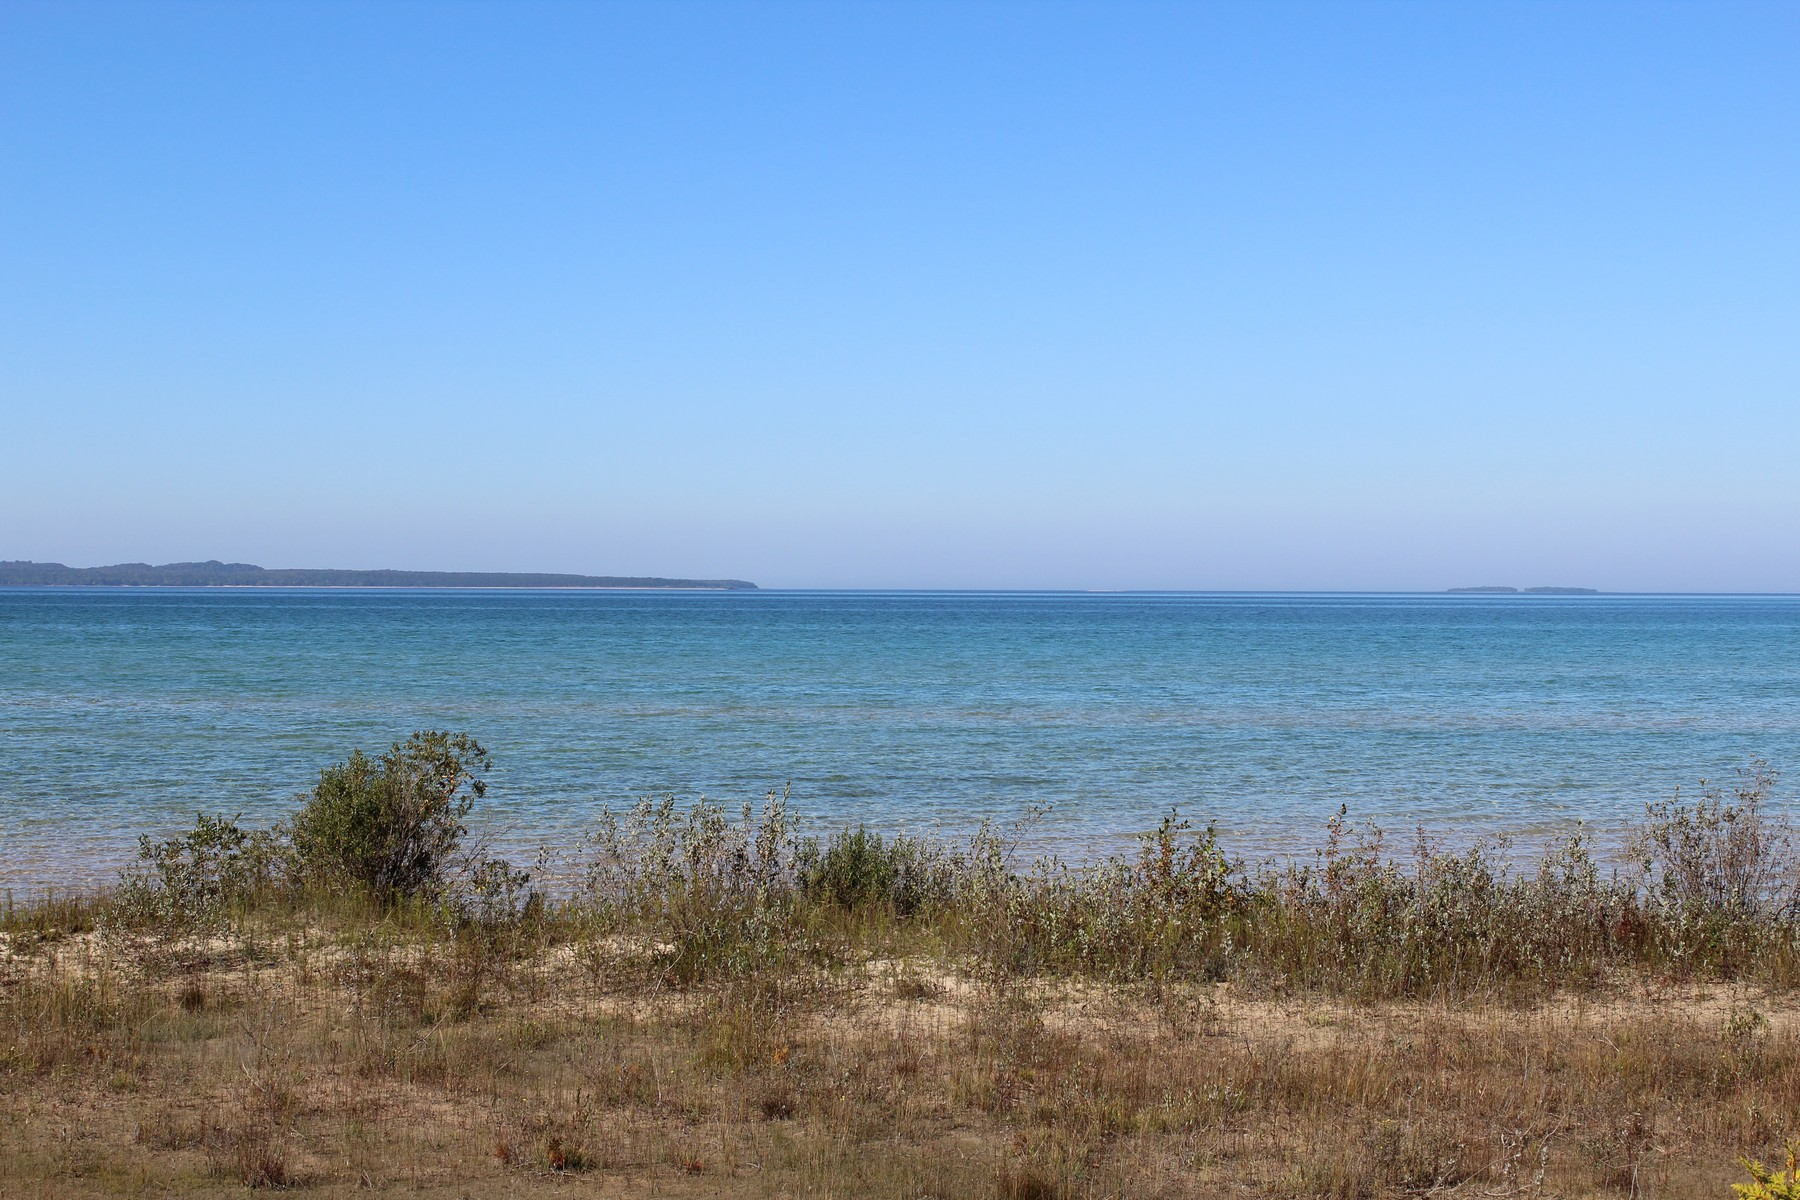 Đất đai vì Bán tại Prime Beachfront on Lake Michigan Lot #22 Lake Shore Road Beaver Island, Michigan, 49782 Hoa Kỳ